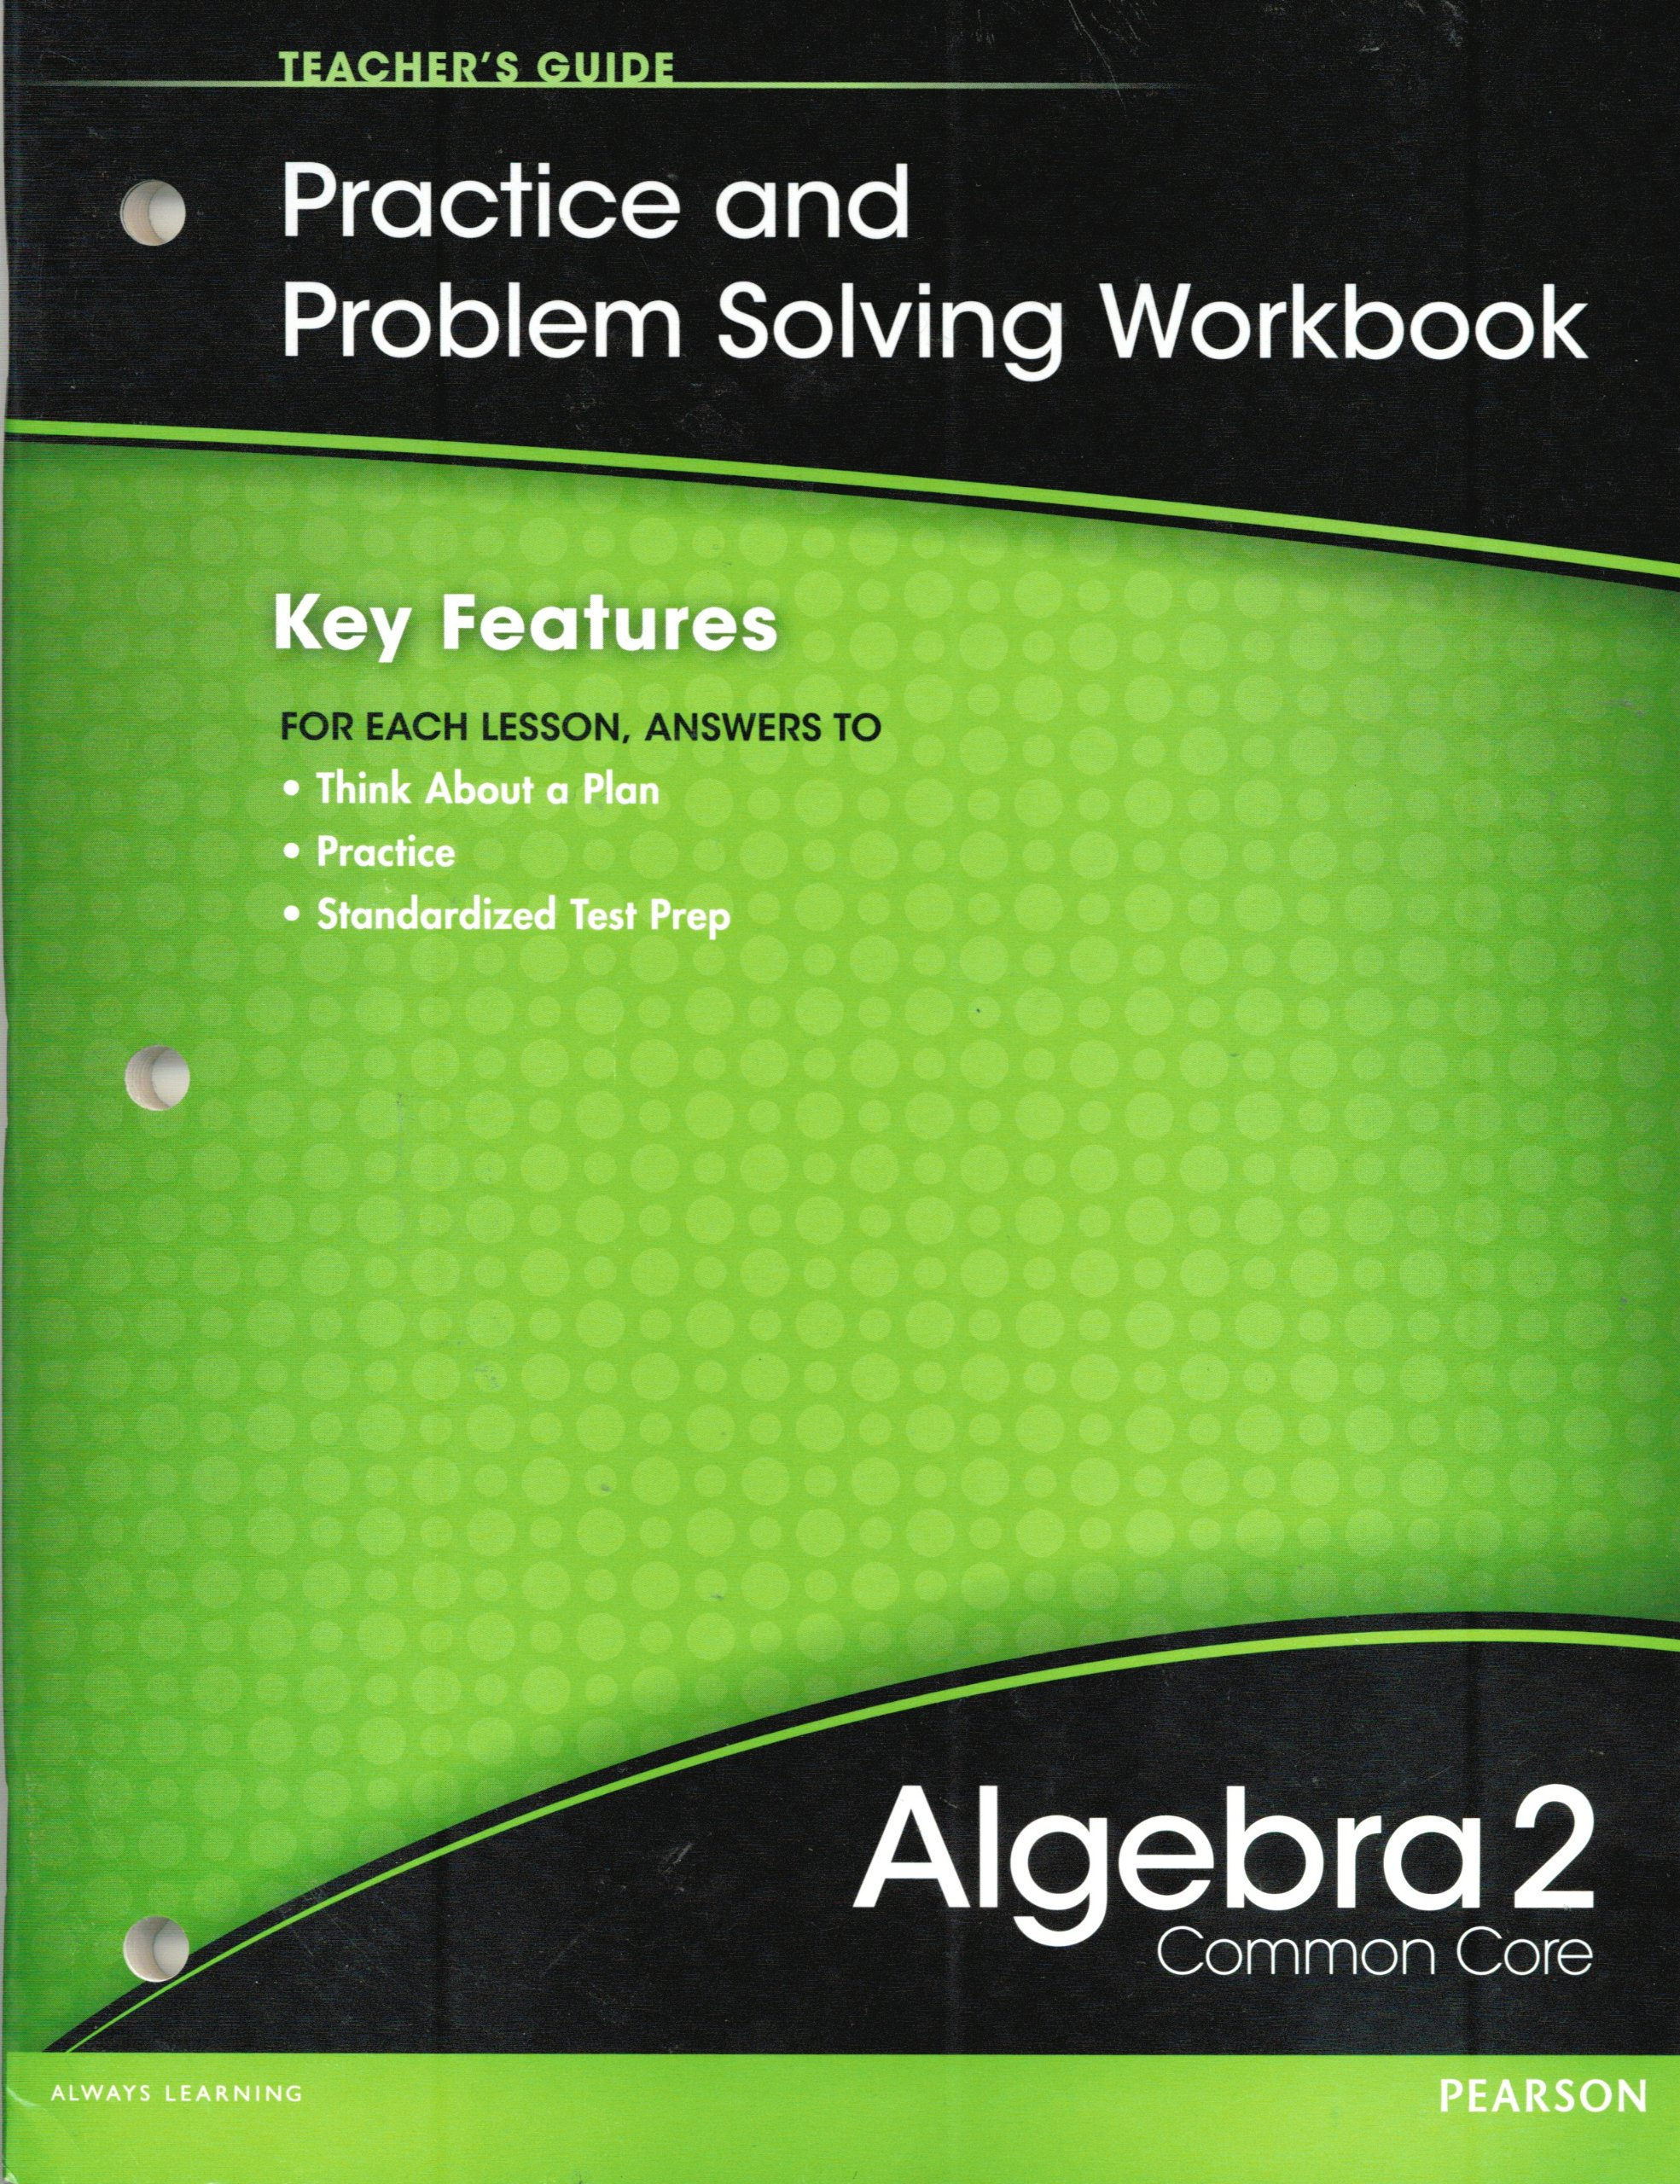 Algebra 2 Common Core Textbook Pdf Big Ideas Math